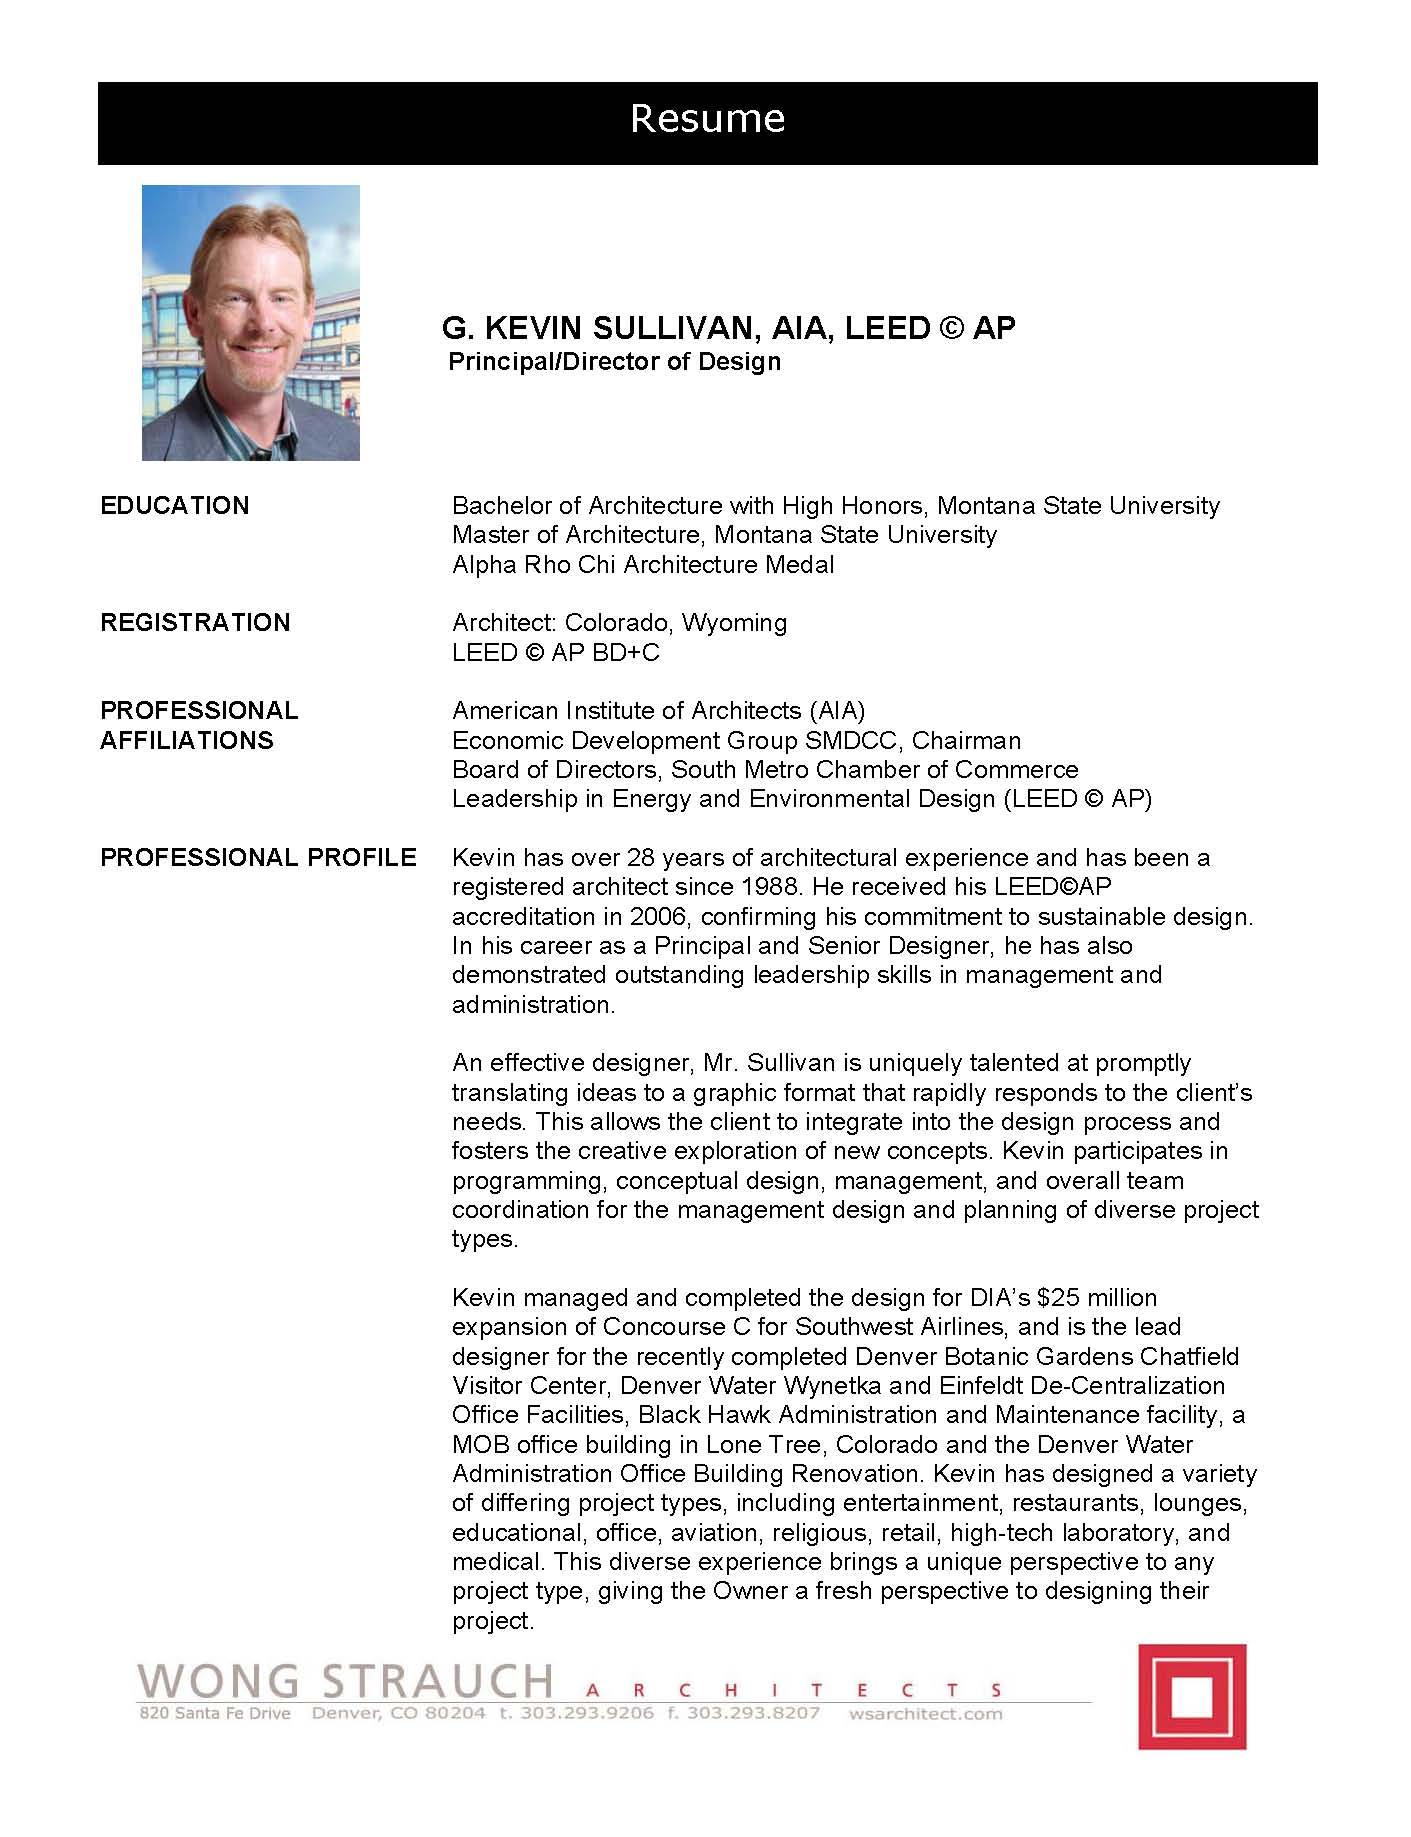 WSA G. Kevin Sullivan Resume_Page_1